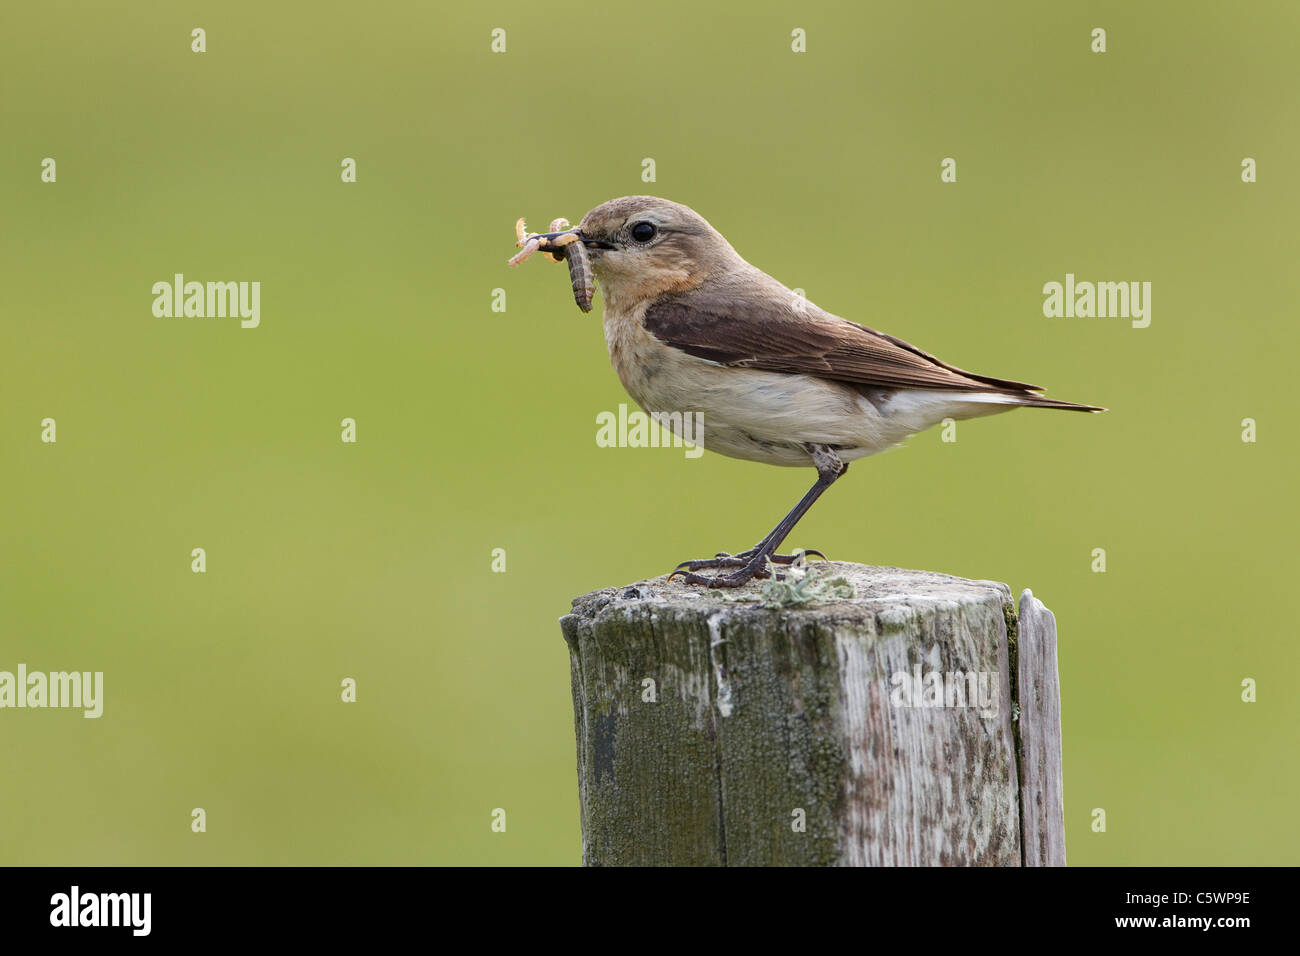 Northern Wheatear (Oenanthe oenanthe). Female perched on fence post with food for chicks. - Stock Image